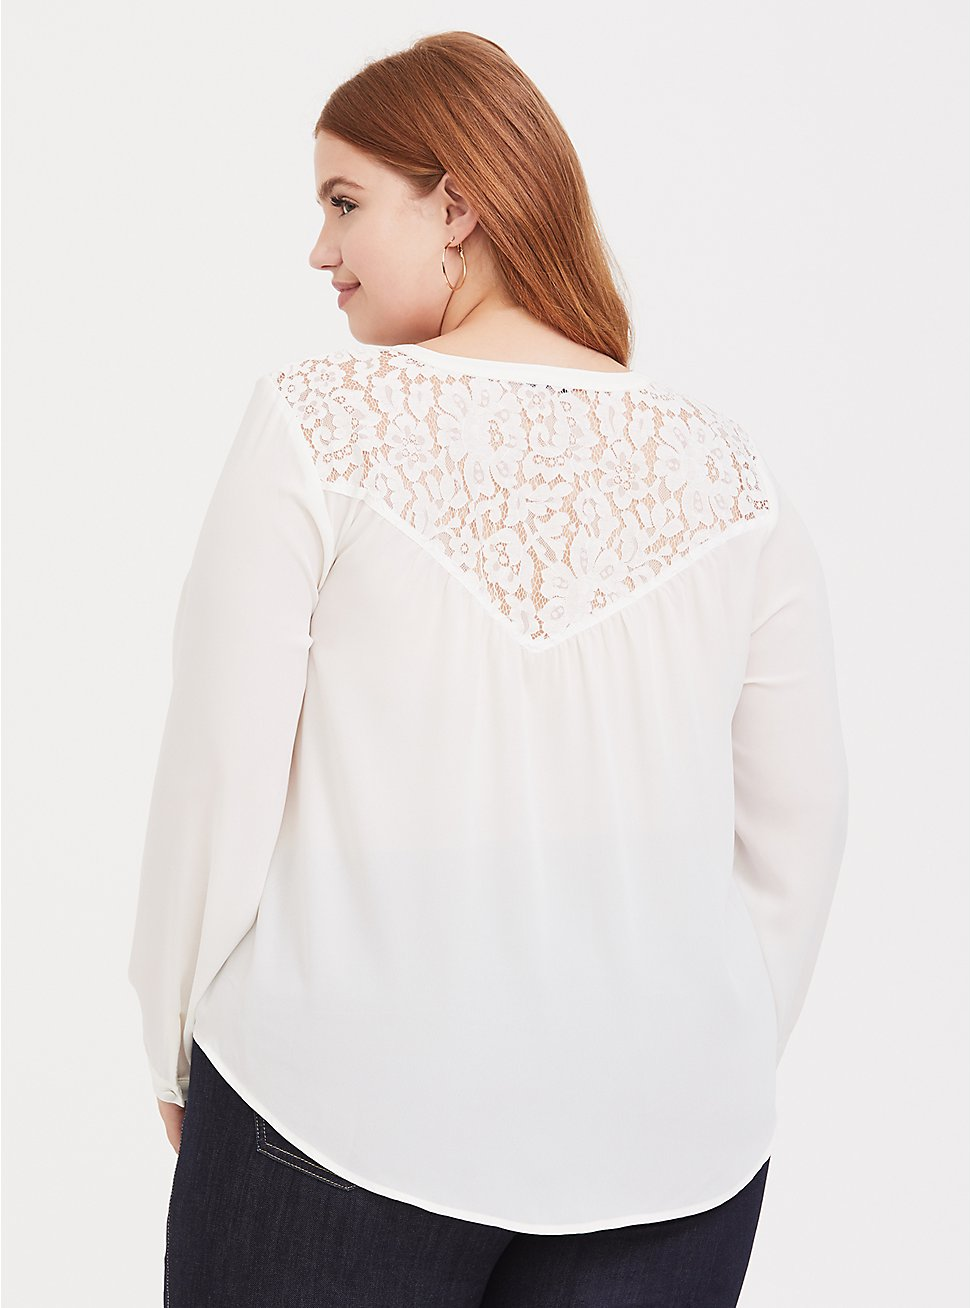 Harper - White Georgette & Lace Button-Loop Blouse, CLOUD DANCER, hi-res